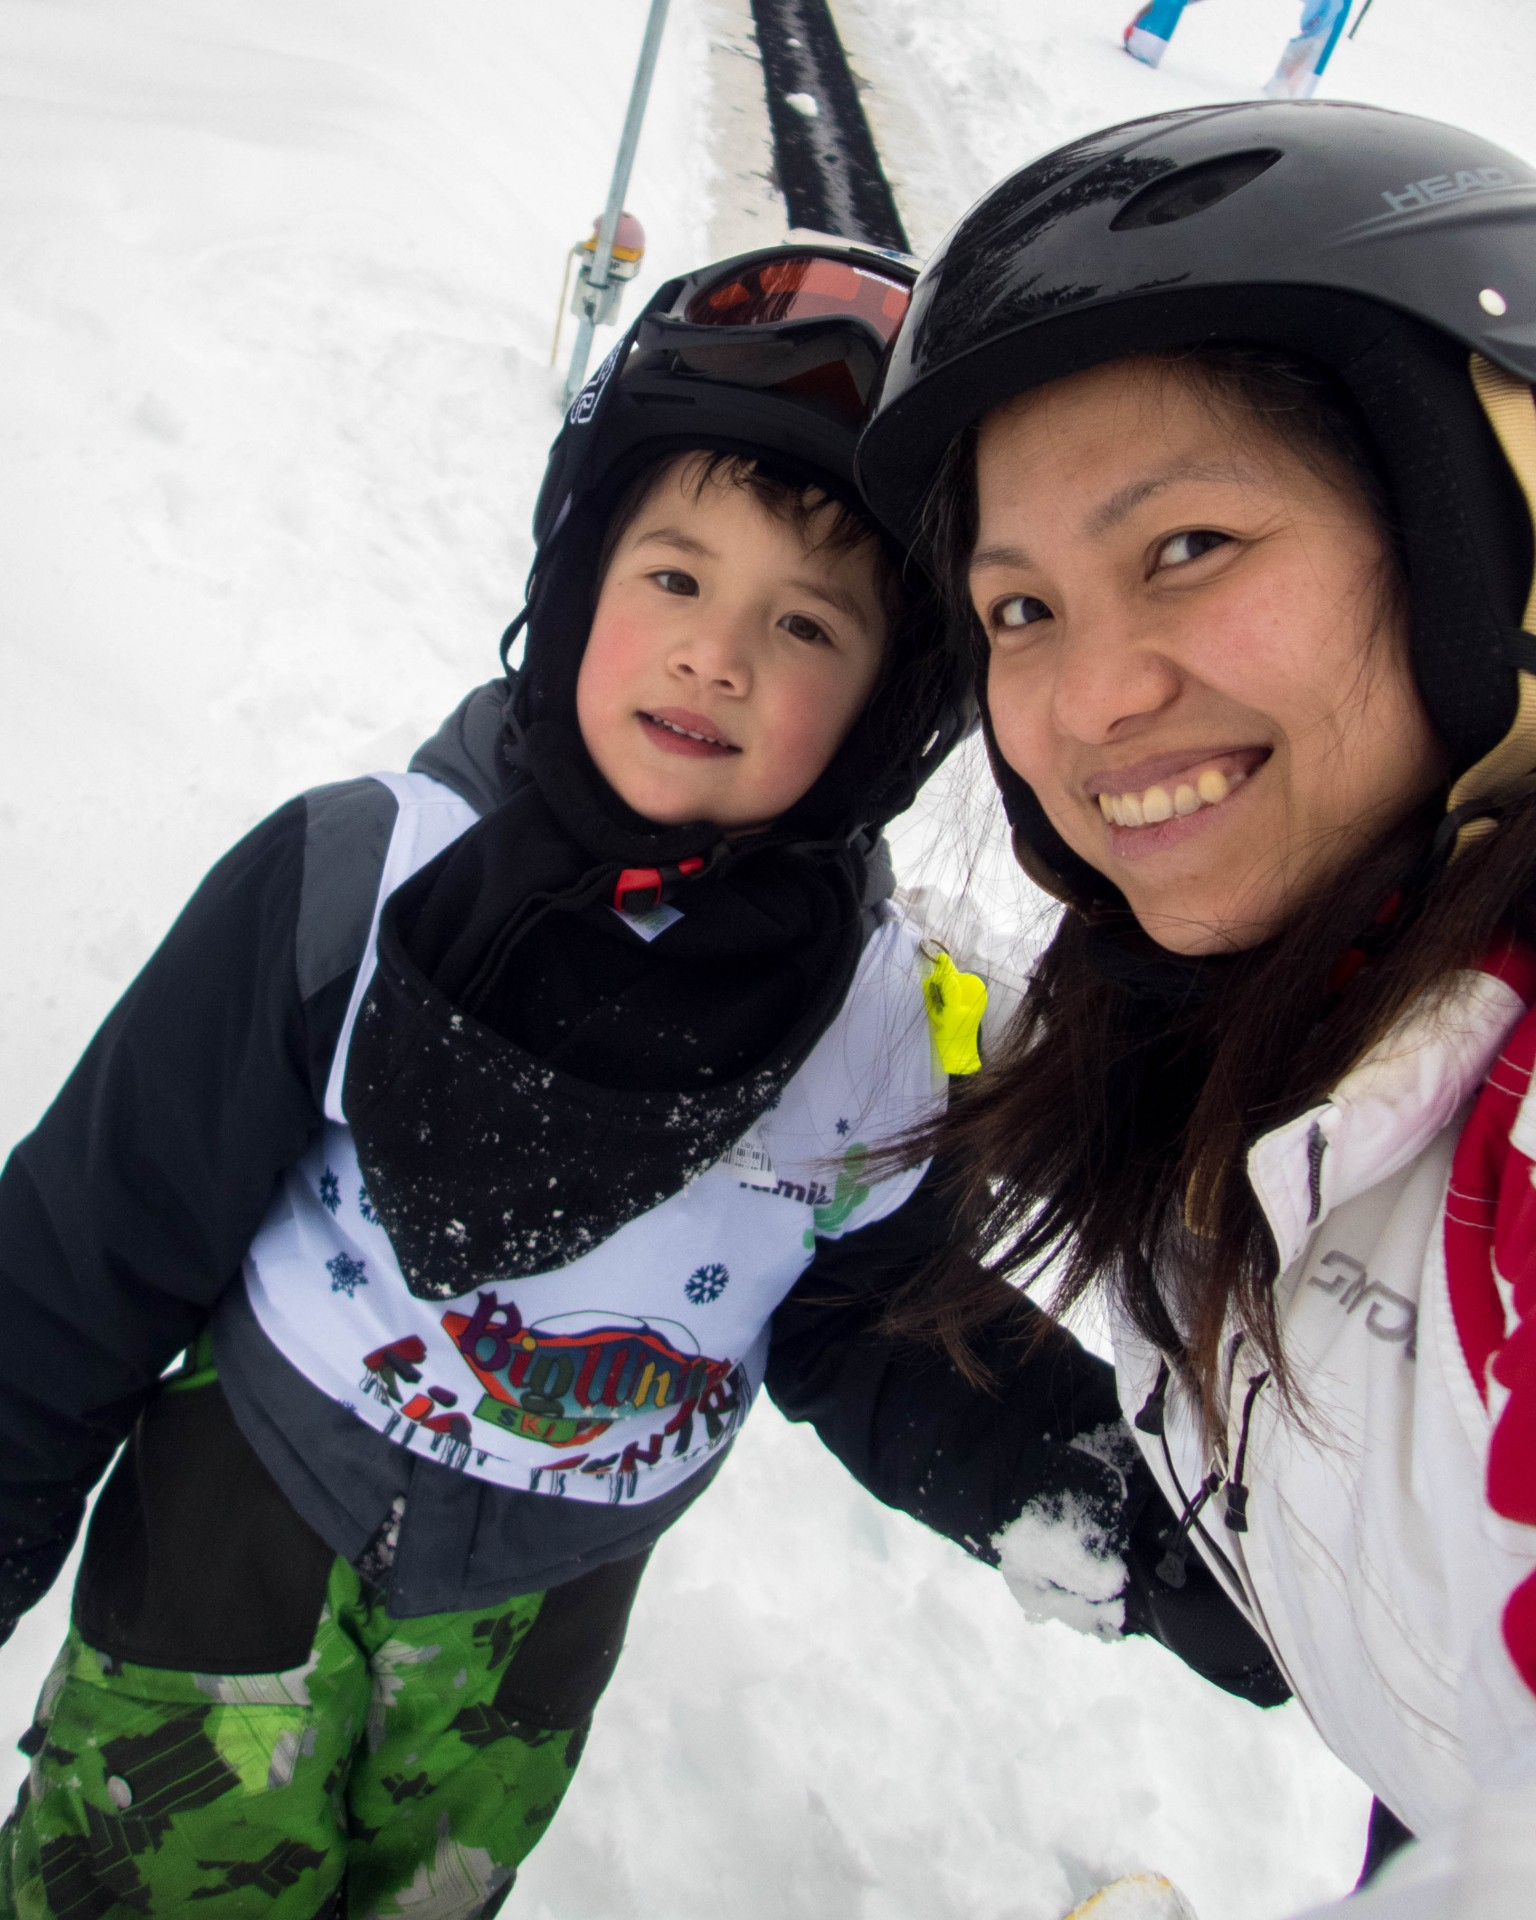 Mom and son in ski outfits smile for the camera - C gets his report card from his instructor at Big White